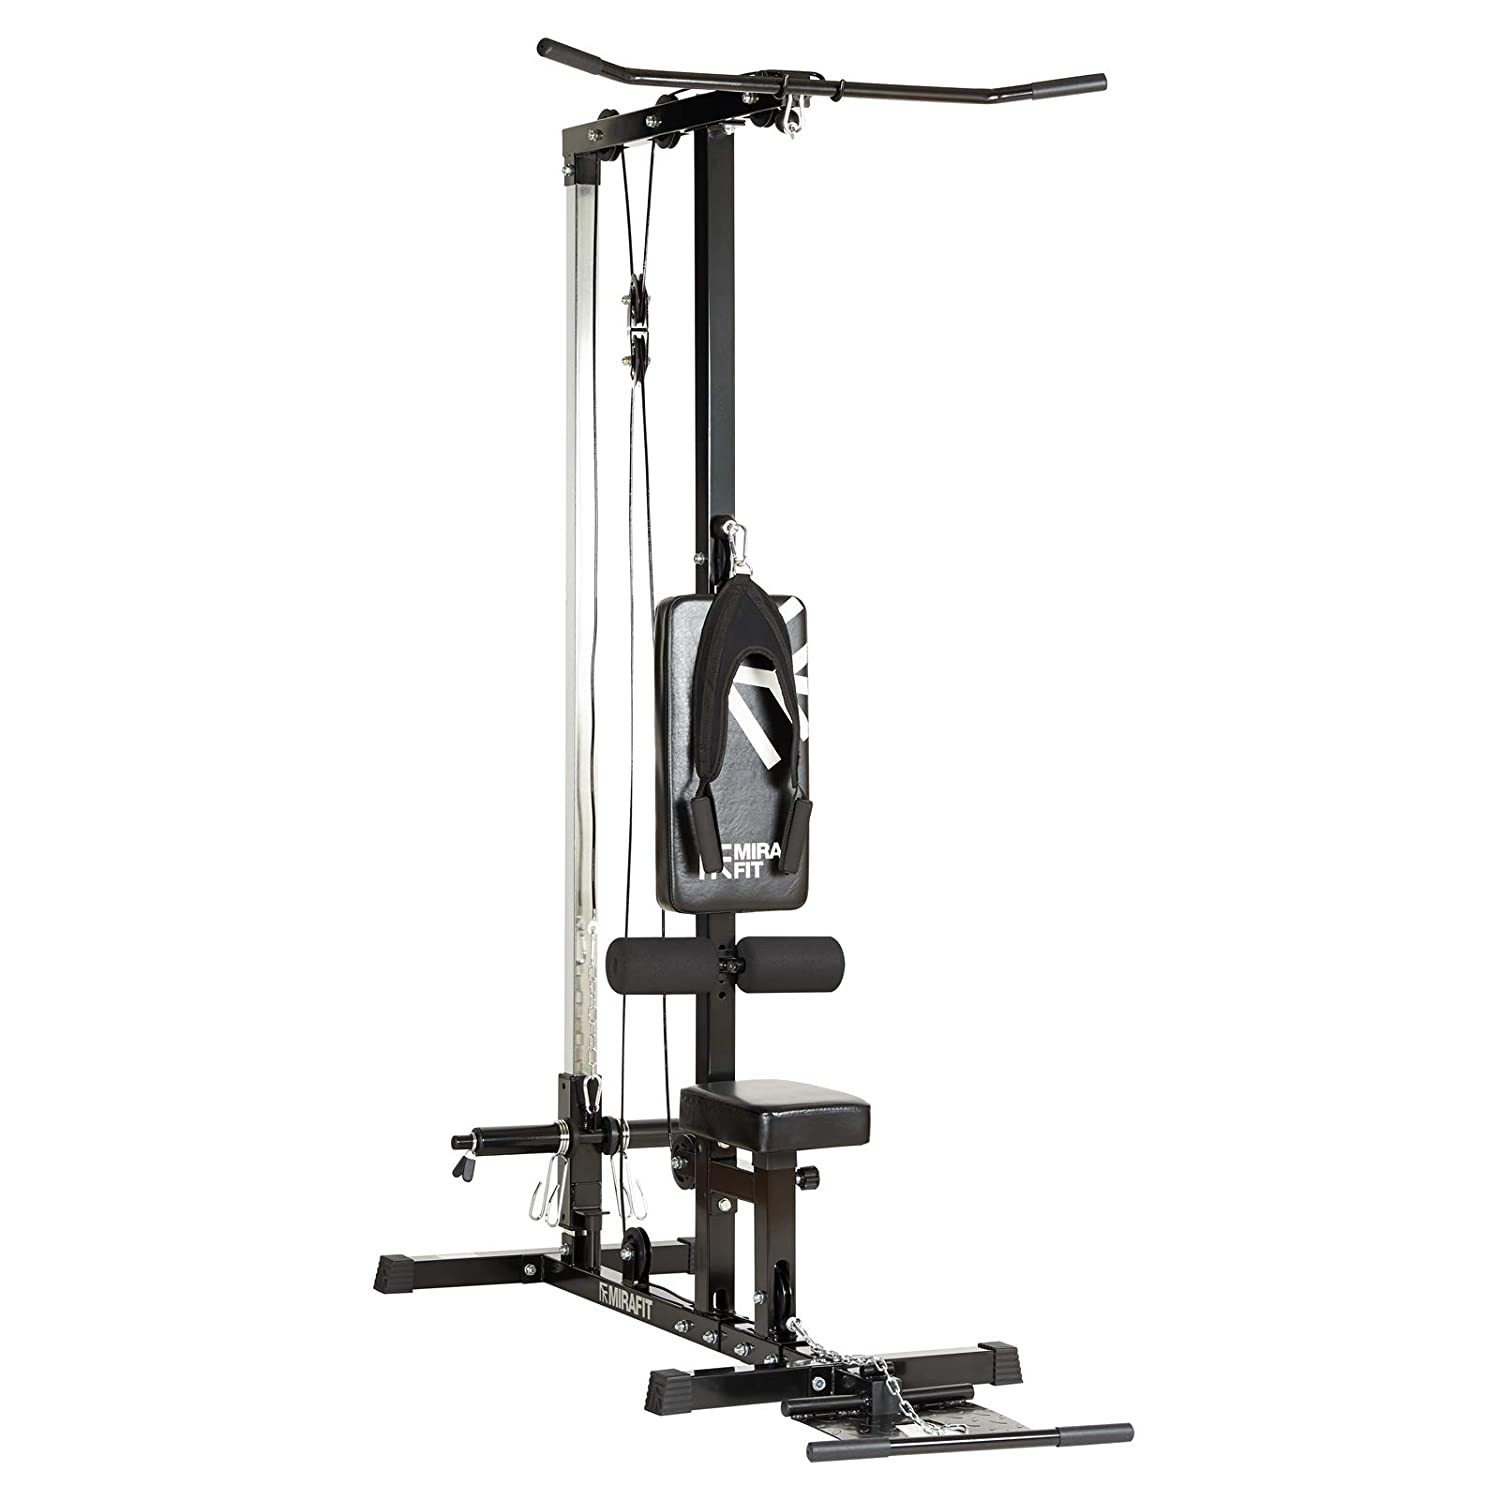 e7c863f685bf0 Mirafit Multi Gym Lat Pull Down Machine - For Back